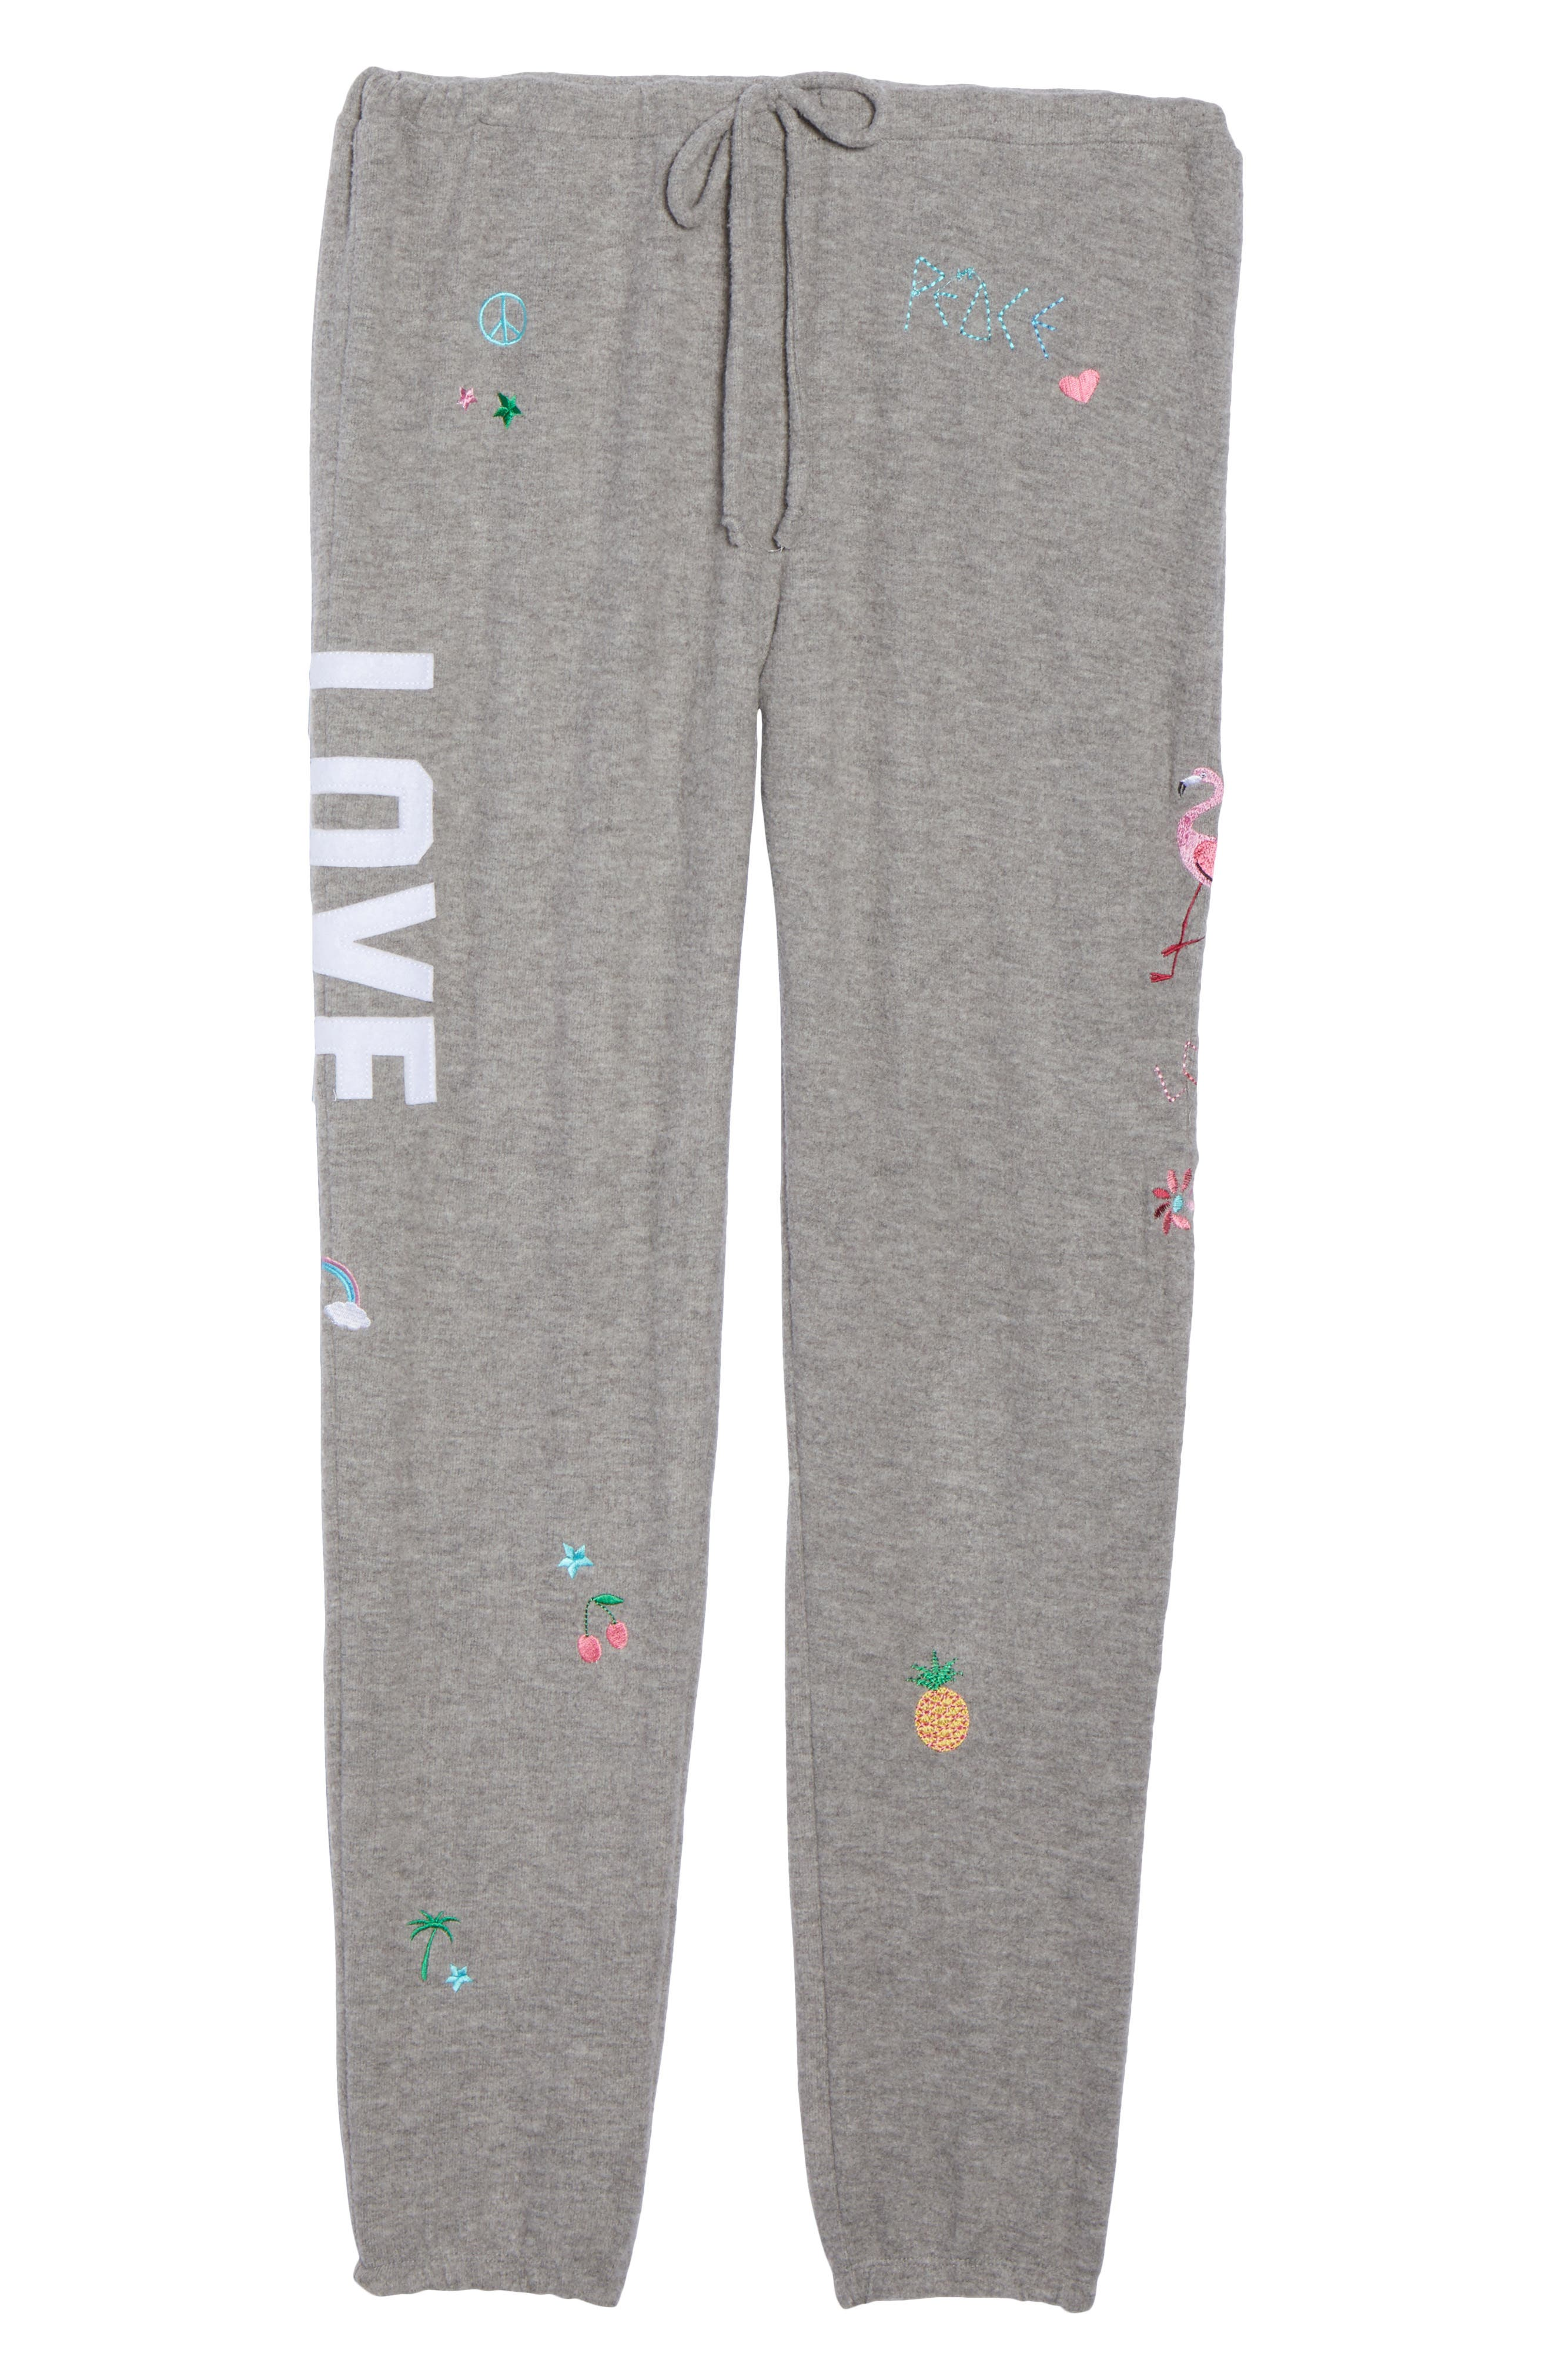 Patched Up Lounge Sweatpants,                             Alternate thumbnail 7, color,                             Heather Grey